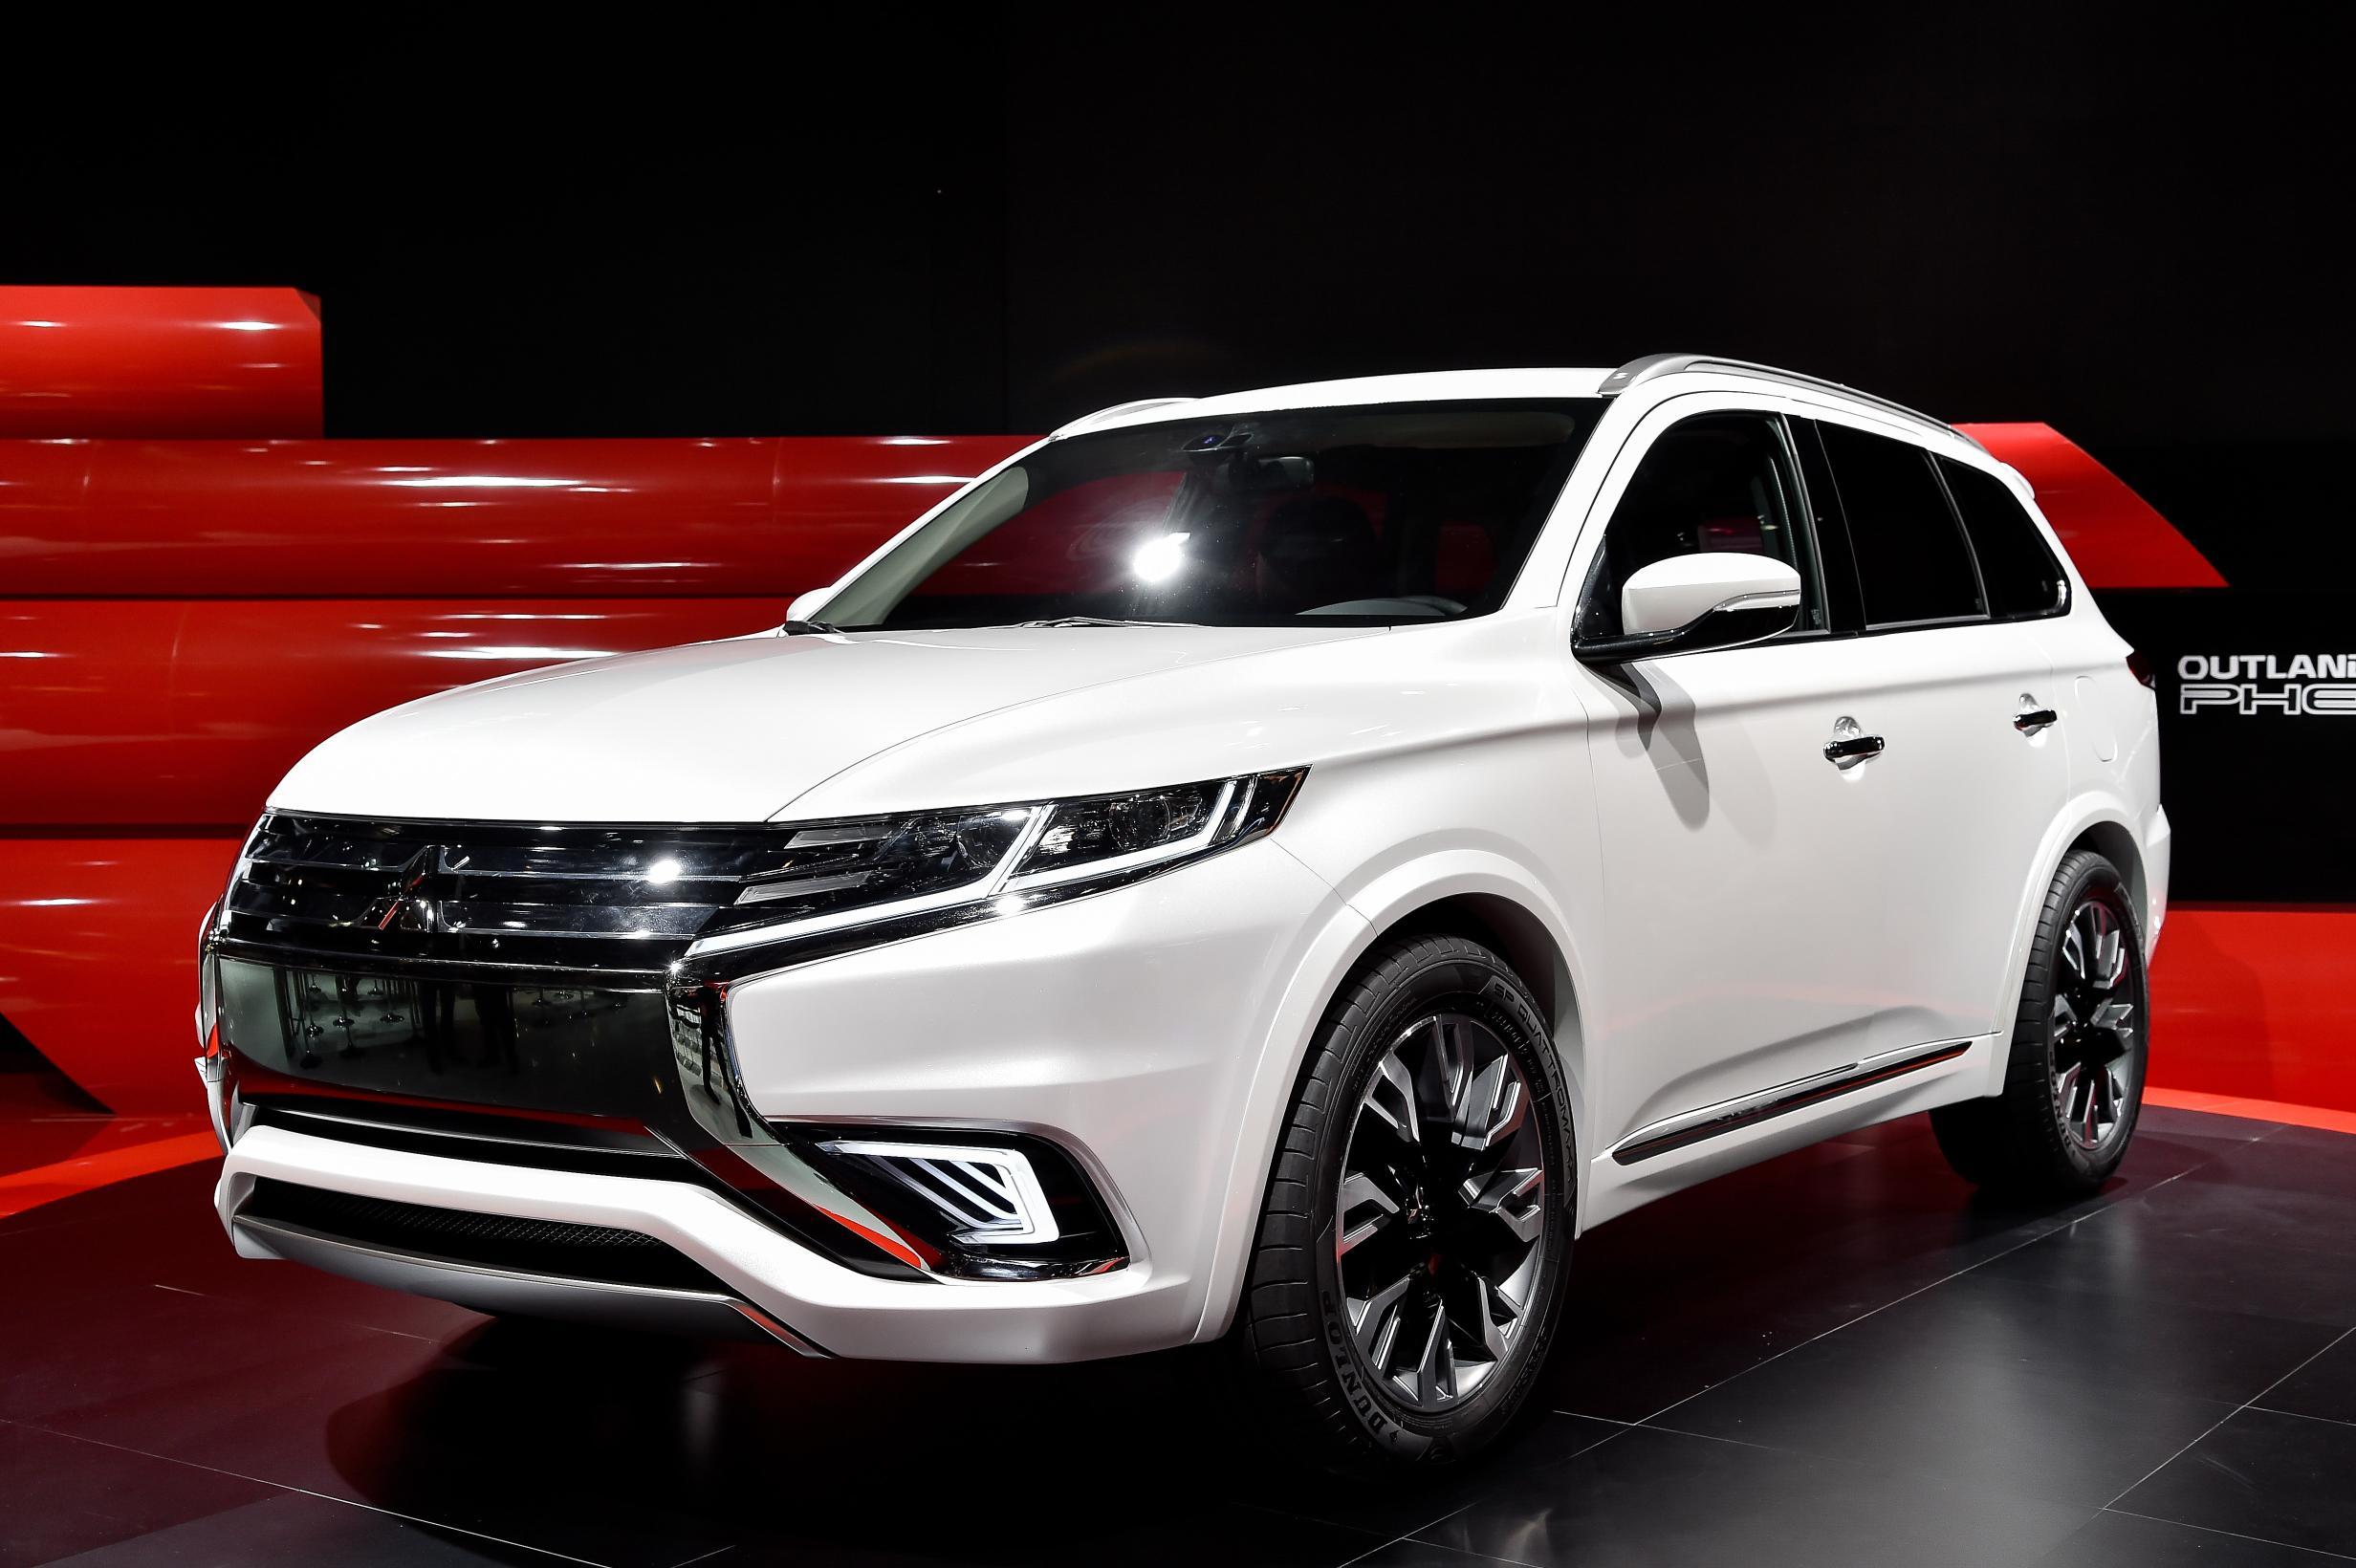 2016 Mitsubishi Endeavor pictures information and specs   Auto 2464x1640